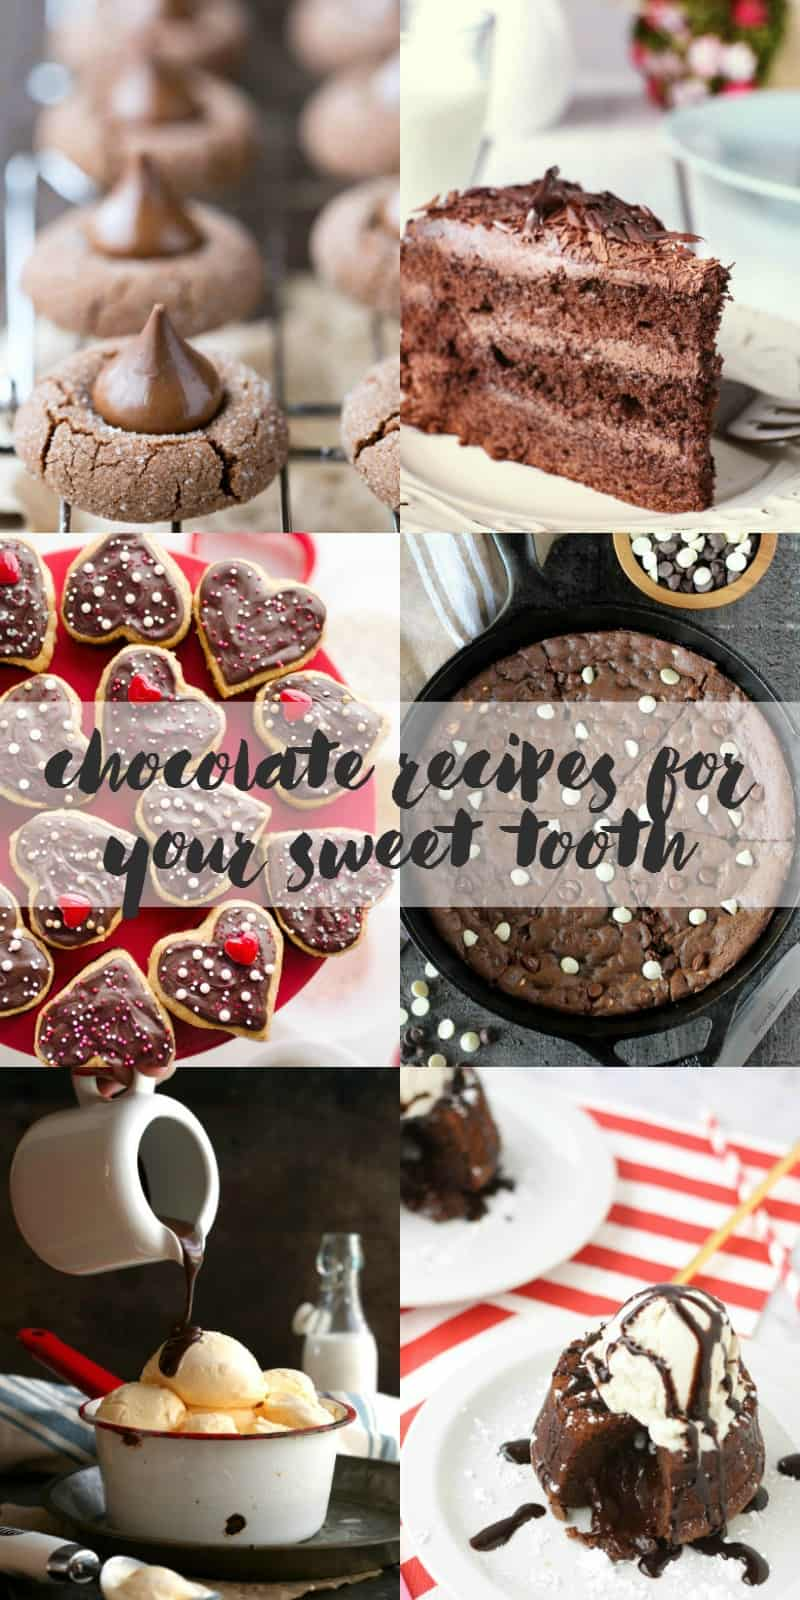 Chocolate Recipes for your Sweet Tooth | cookingwithcurls.com